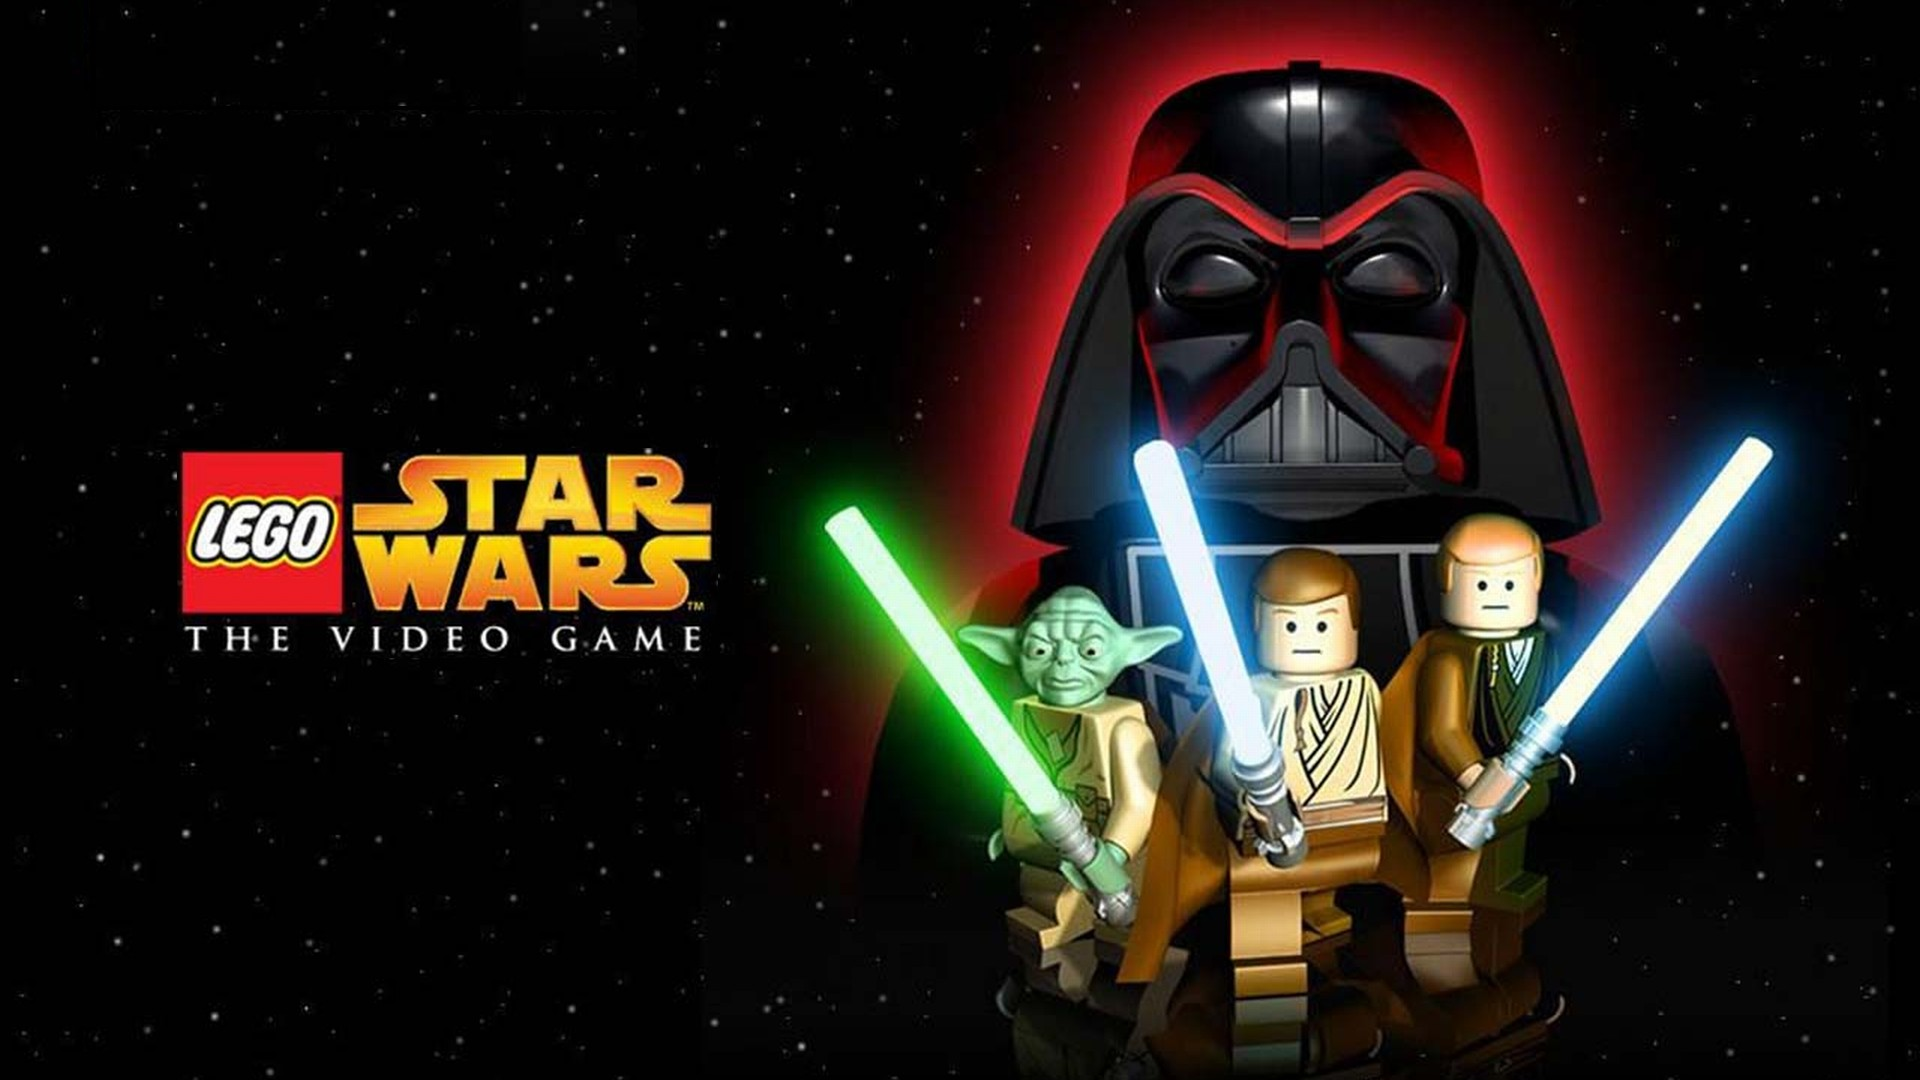 Lego Star Wars The Video Game Hd Wallpaper Background Image 1920x1080 Id 668166 Wallpaper Abyss